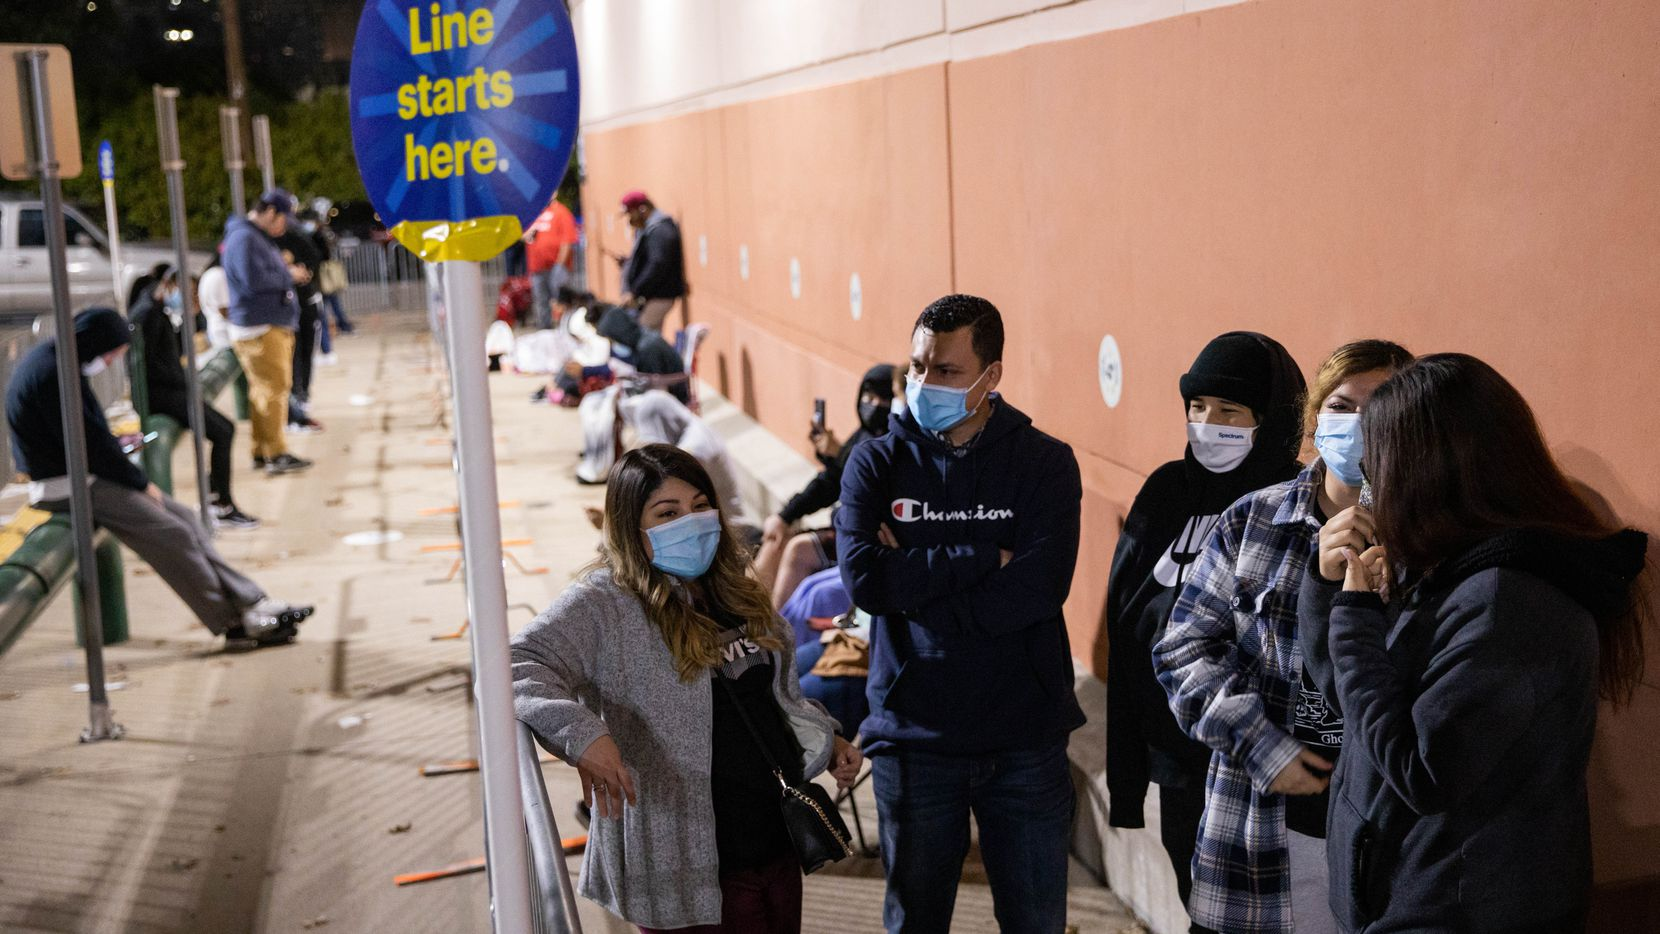 From left: Lourdes Alvarez, Eddie Zubiri, DJ Rios, Leizet Zubiri and Karissa Flores wait at the front of the line at Best Buy on North Central Expressway during Black Friday in Dallas. They got in line at 2:30 a.m. for the store to open at 5 a.m. but walked out empty-handed after finding out the Insignia television they came for was out of stock.